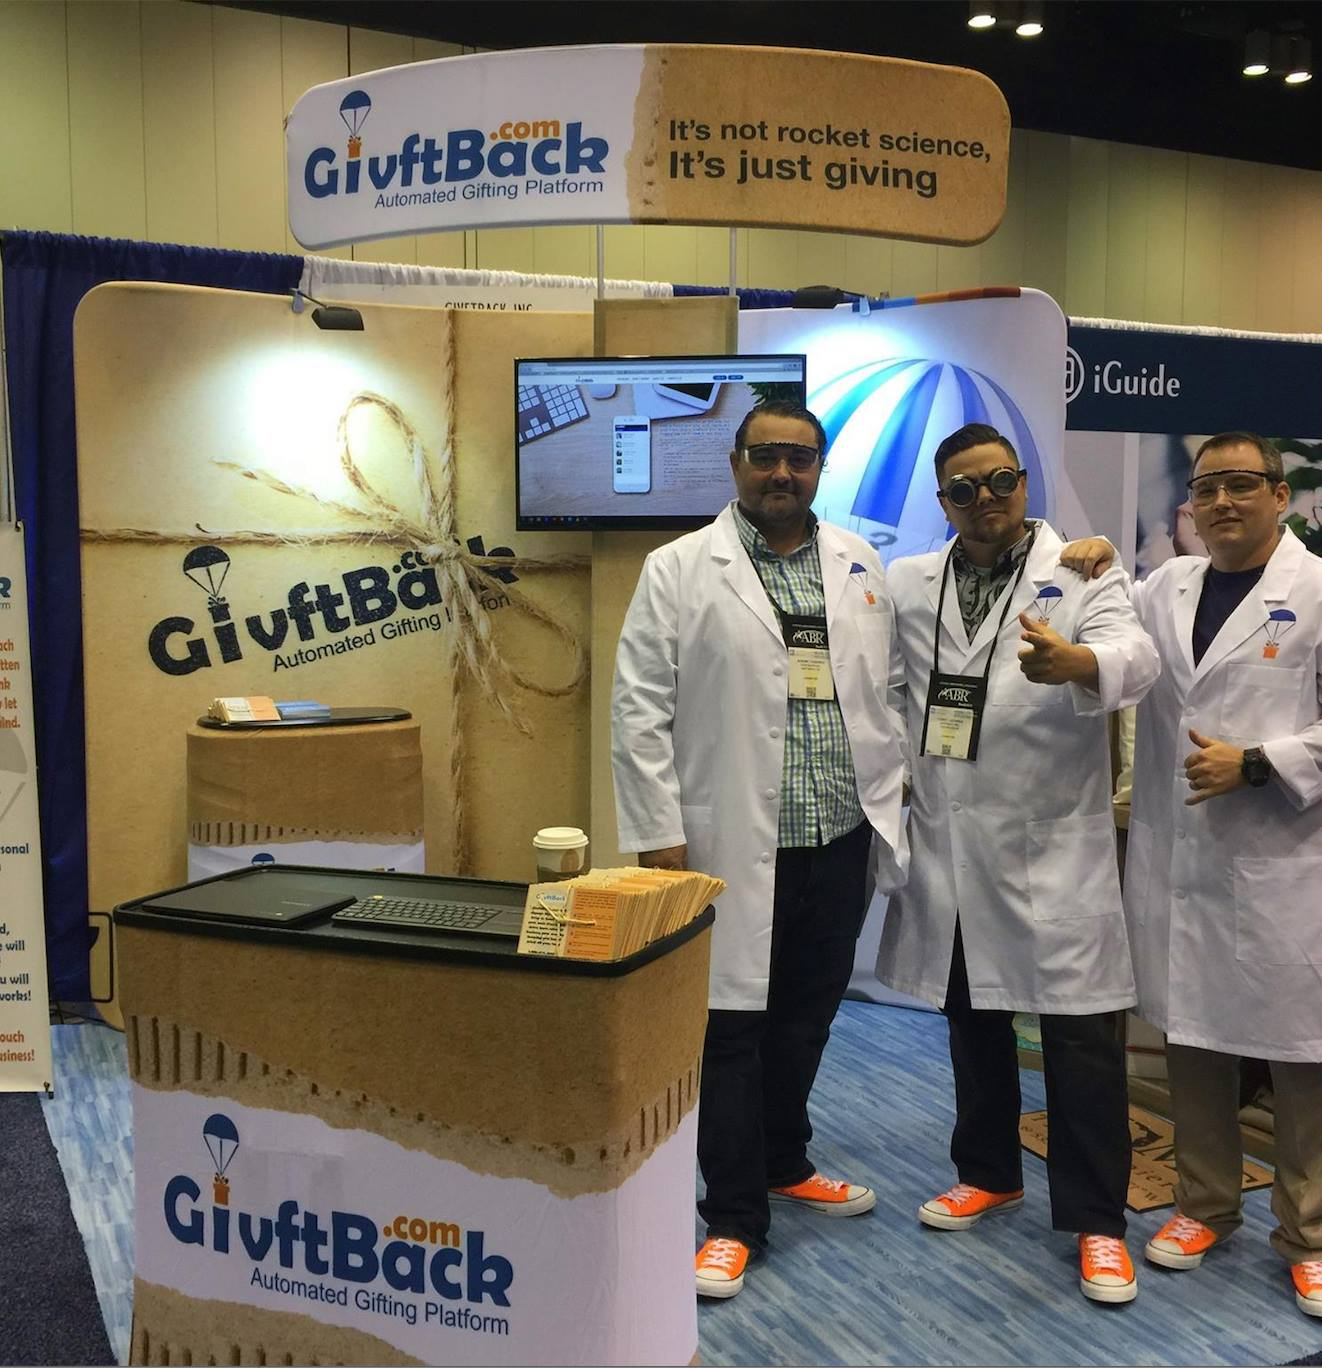 Example of brand awareness booth from GivftBack